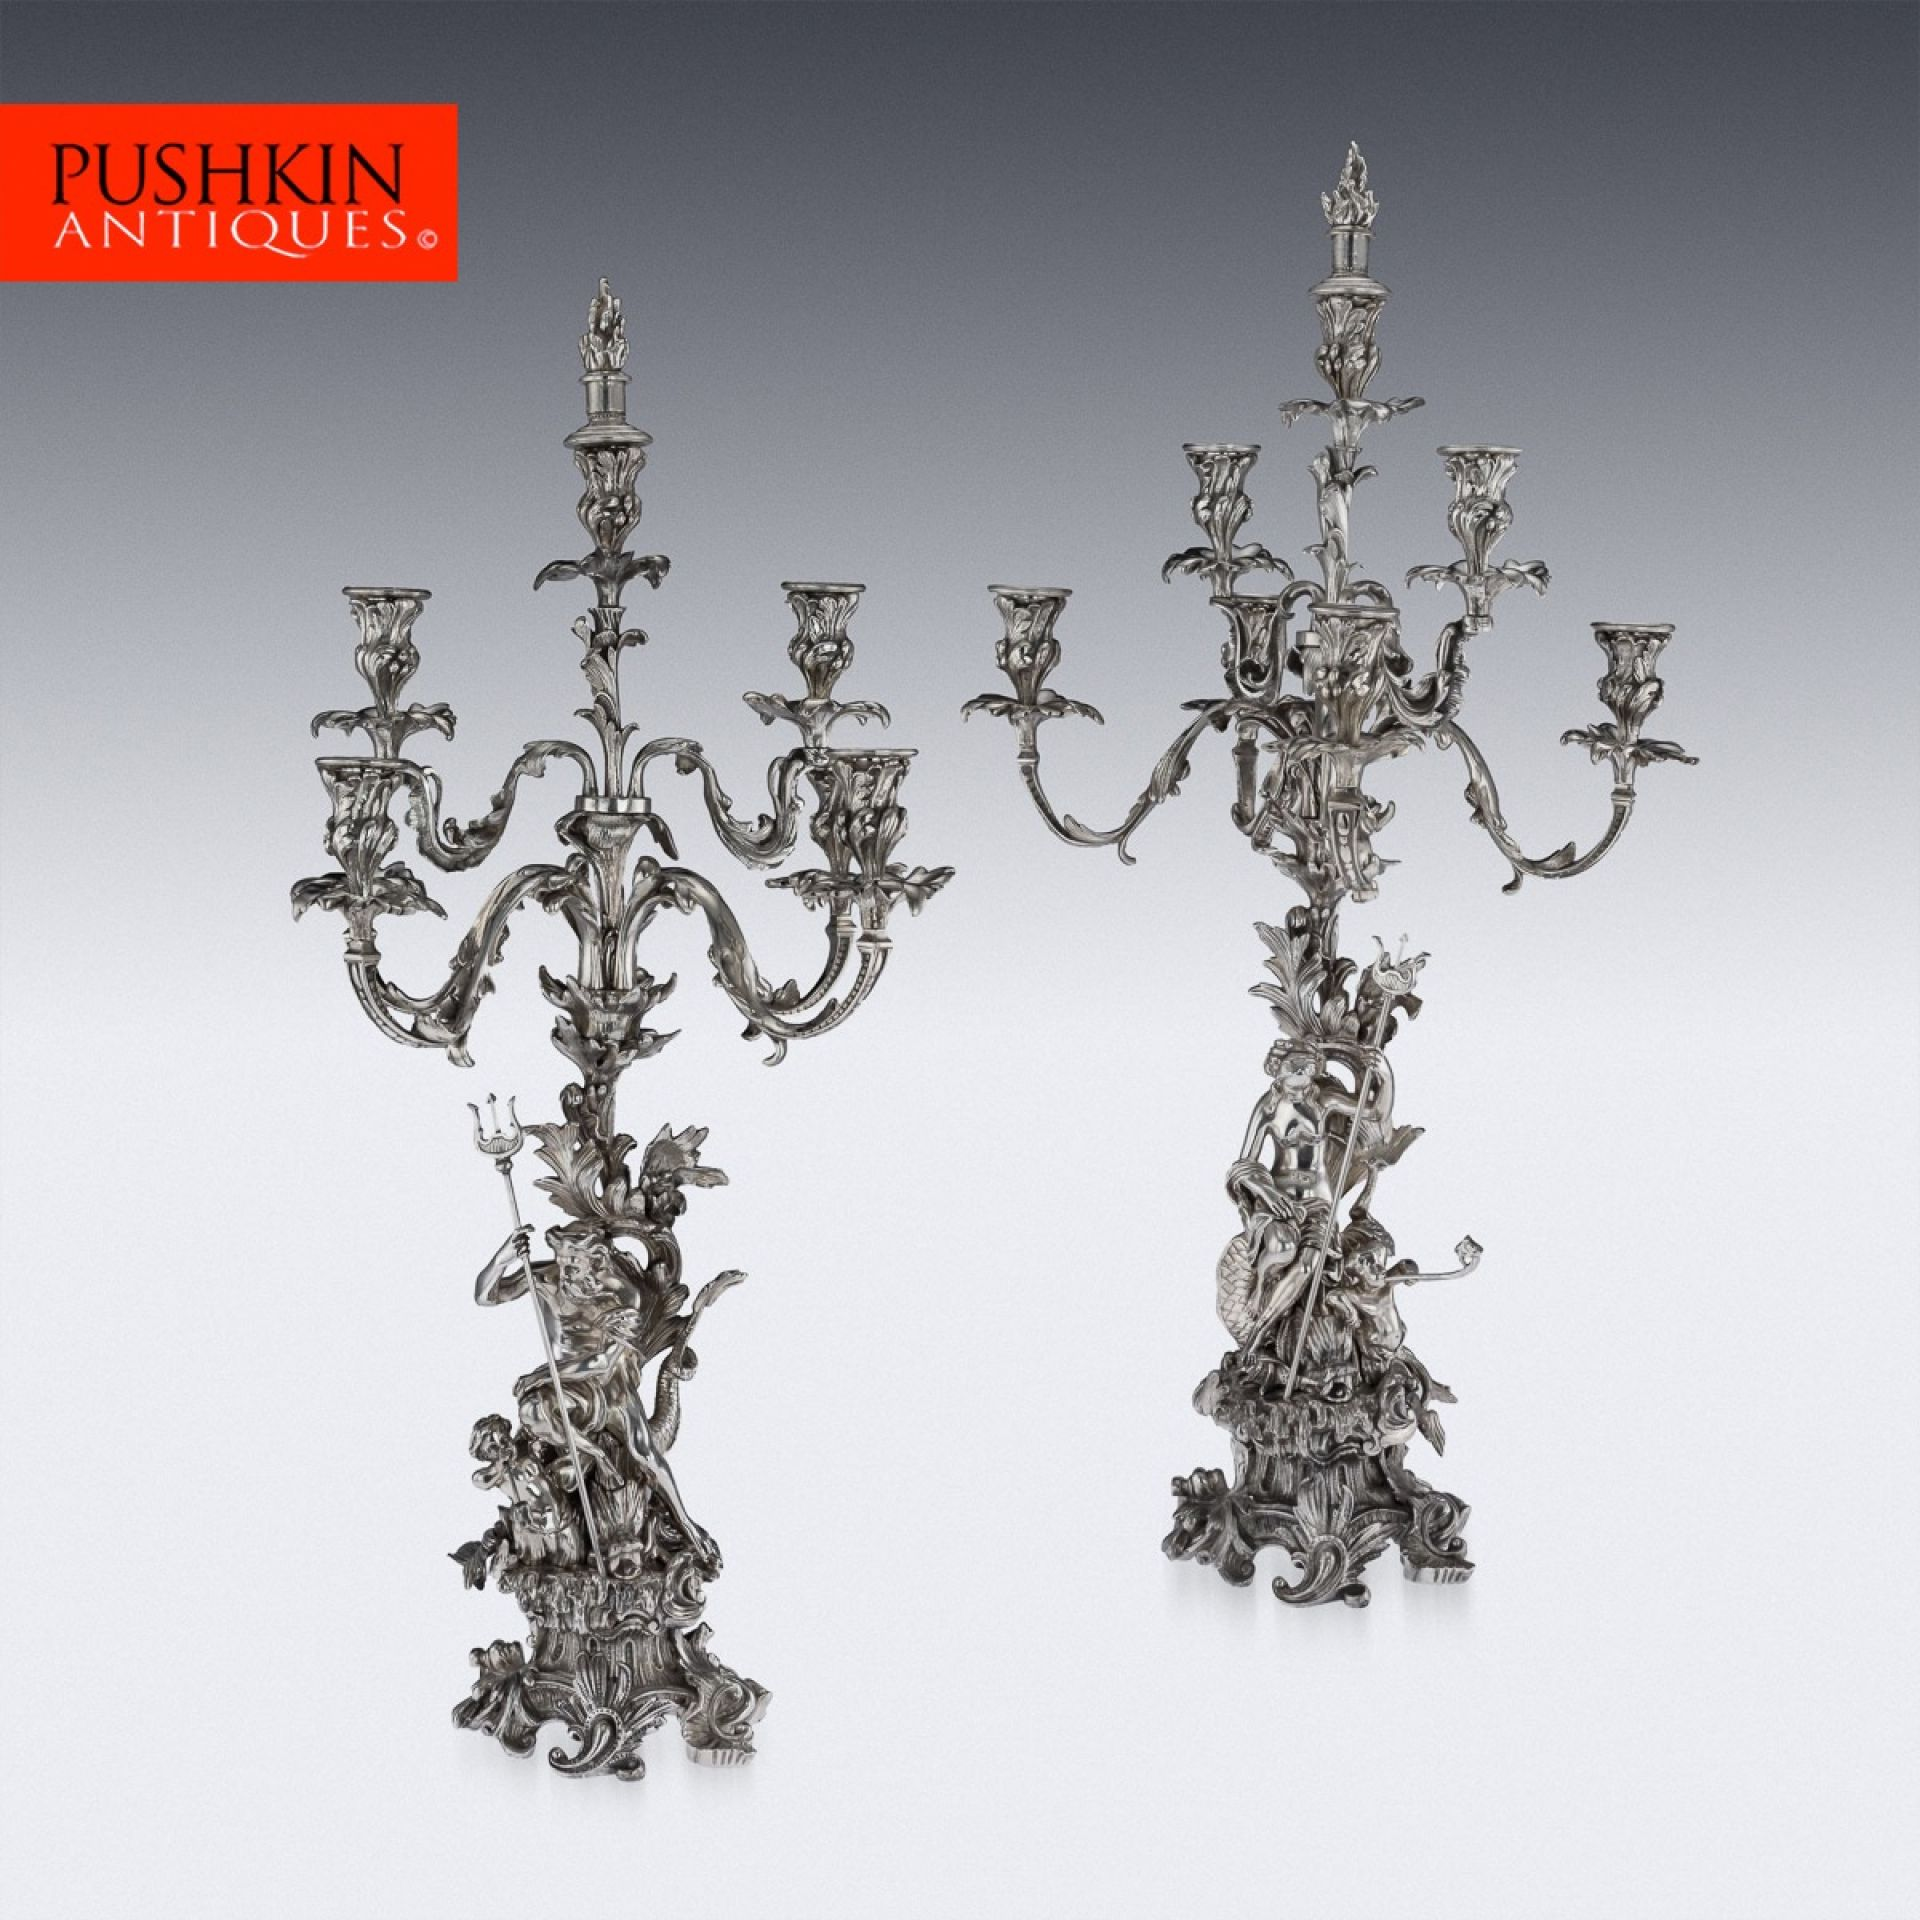 ANTIQUE 19thC FRENCH SILVERED BRONZE PAIR OF CANDELABRA, PARIS c.1870